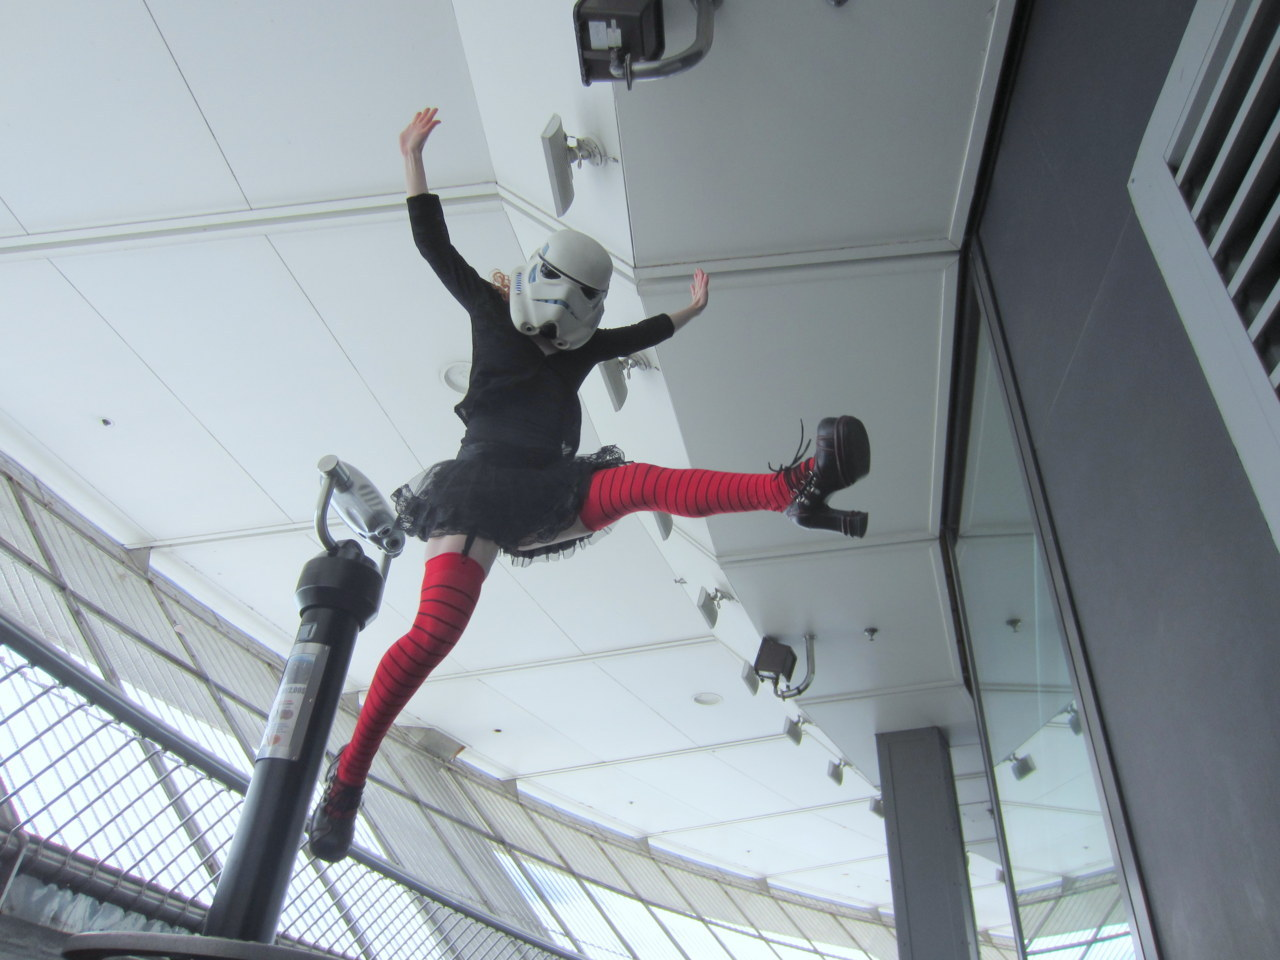 Red jumping in the wind up on the CN tower